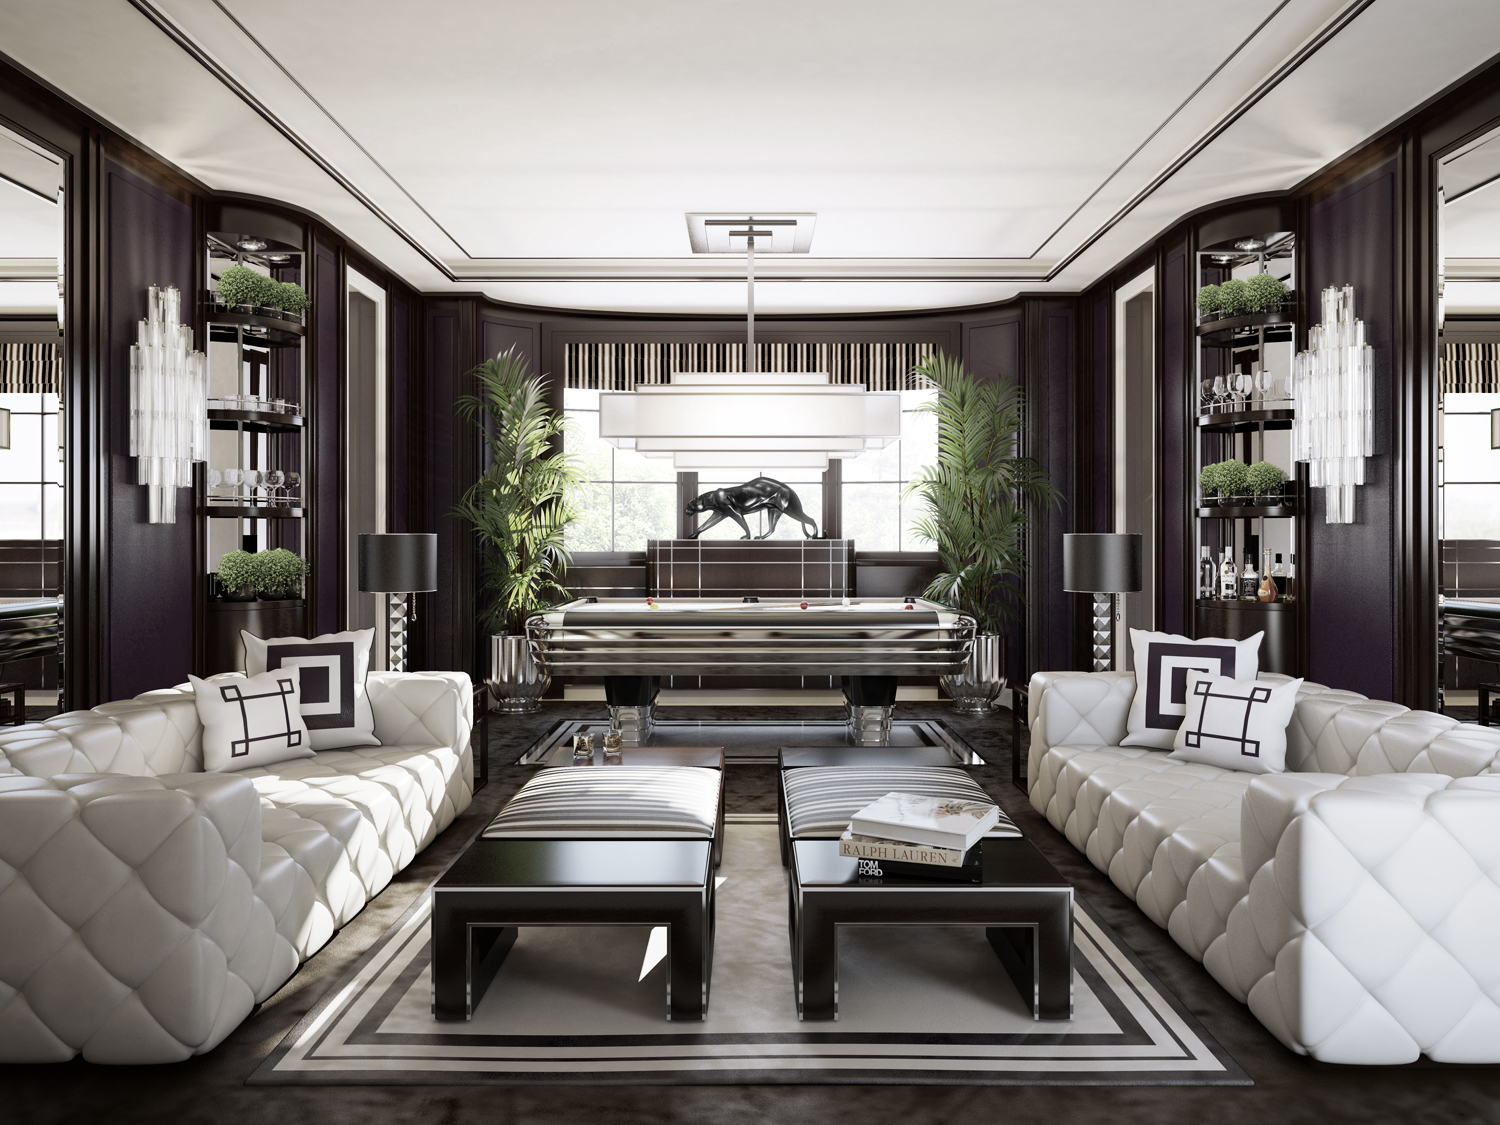 Luxury Interior Designs: Architectural Visualisation